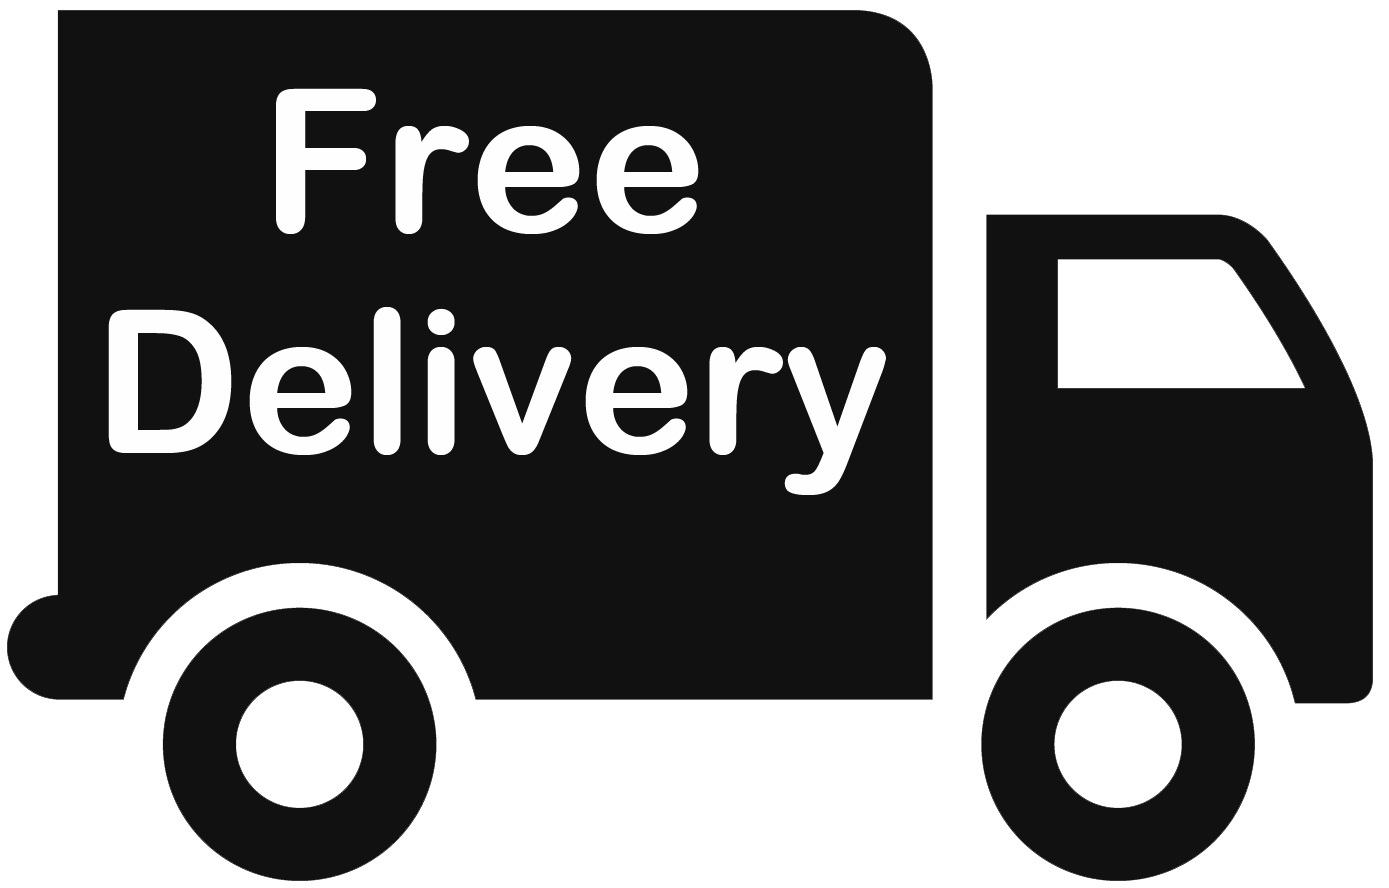 free-delivery-black.jpg